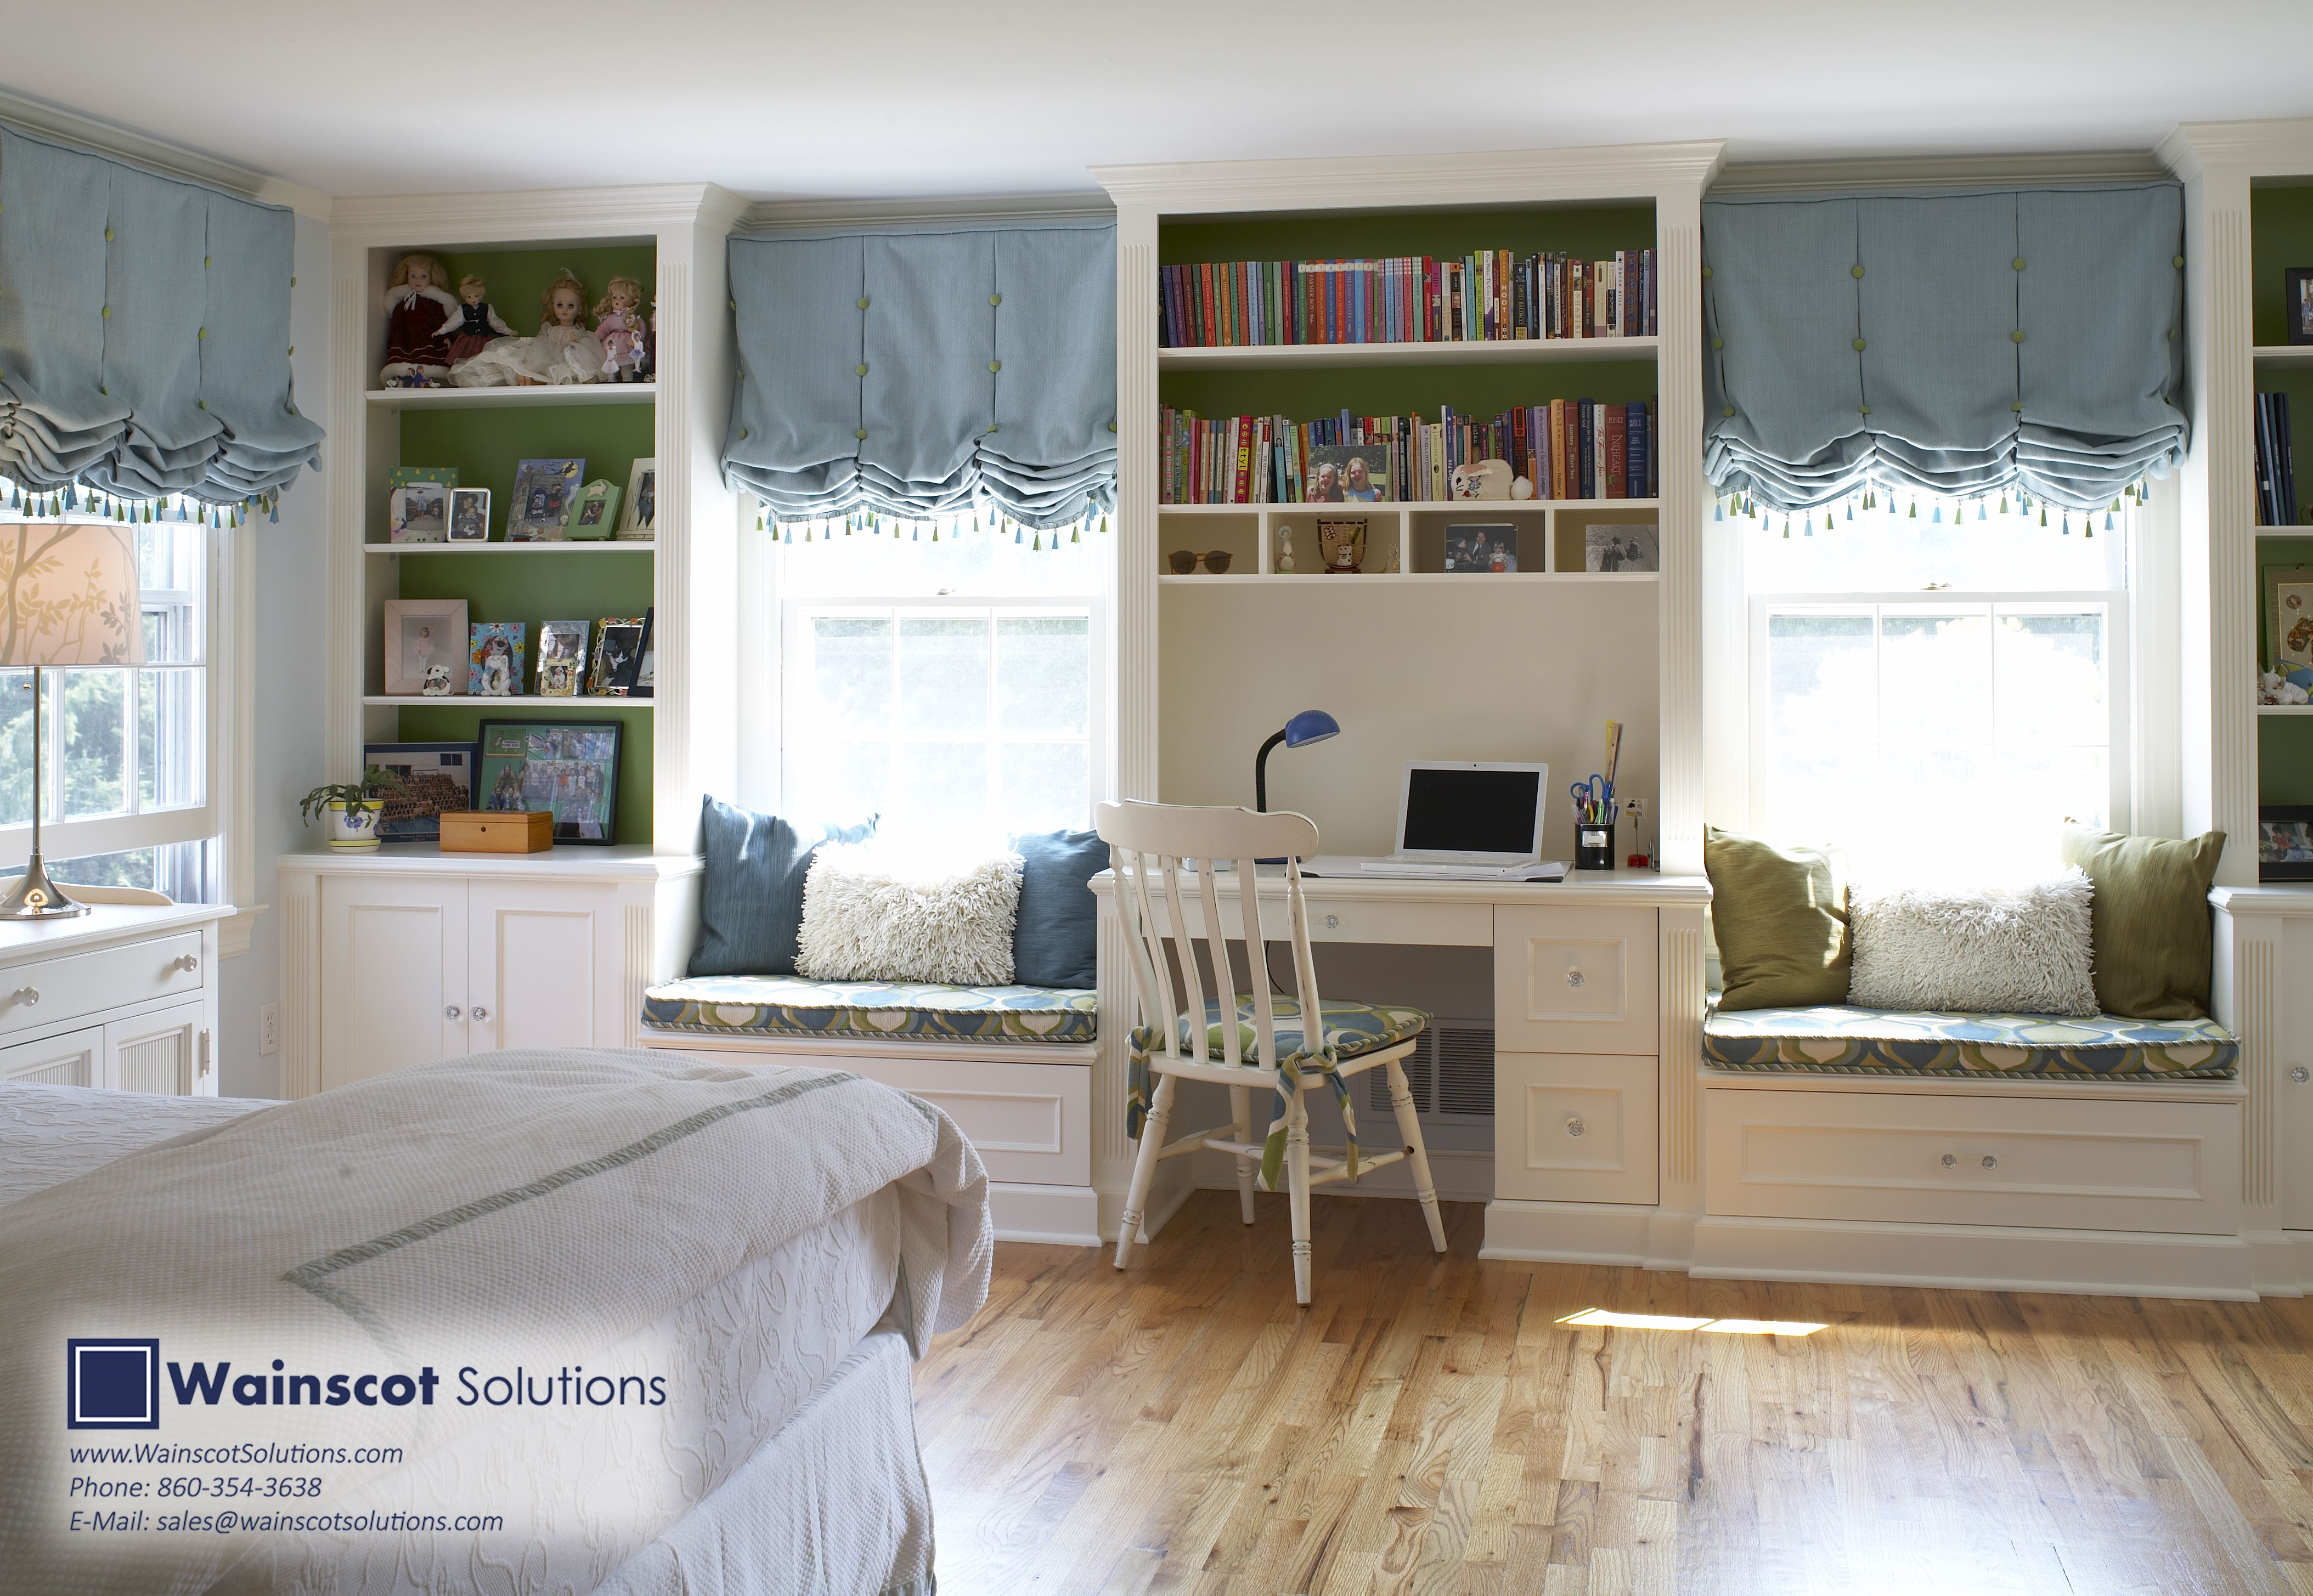 Builtin book shelves are the perfect way to add both